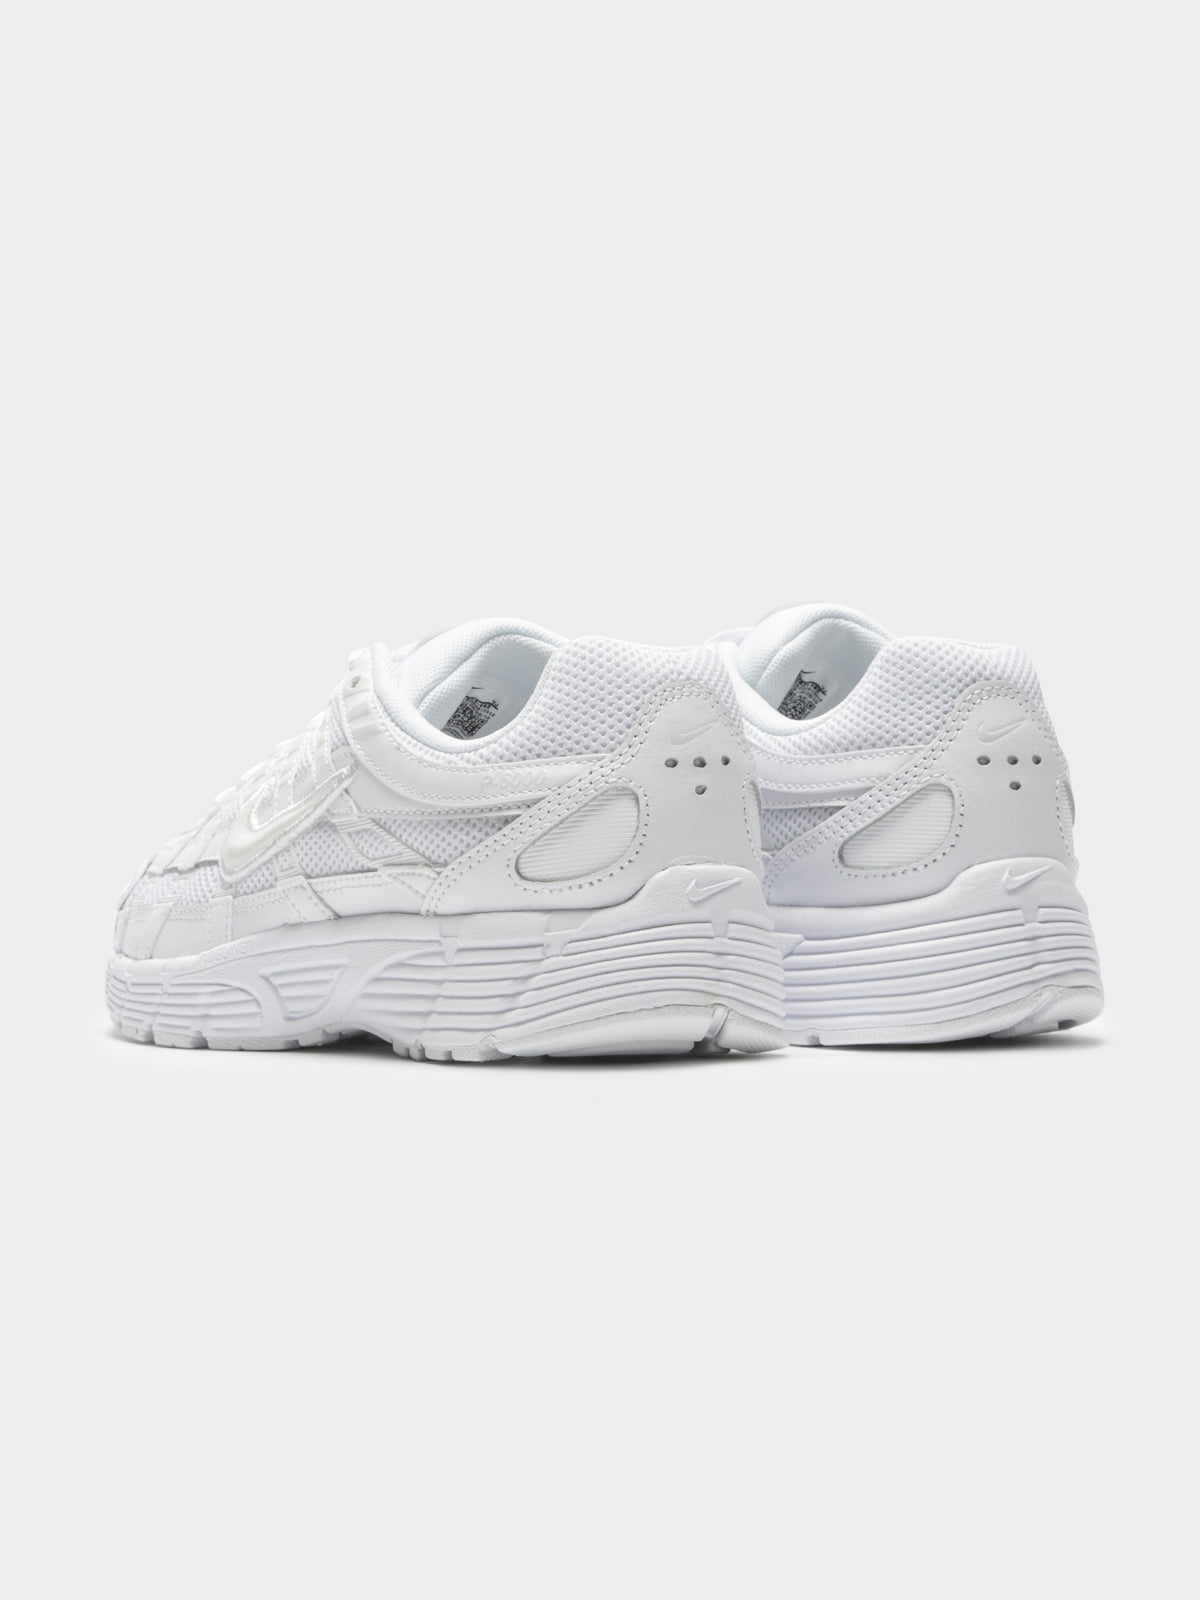 Womens Nike P 6000 Sneakers in White